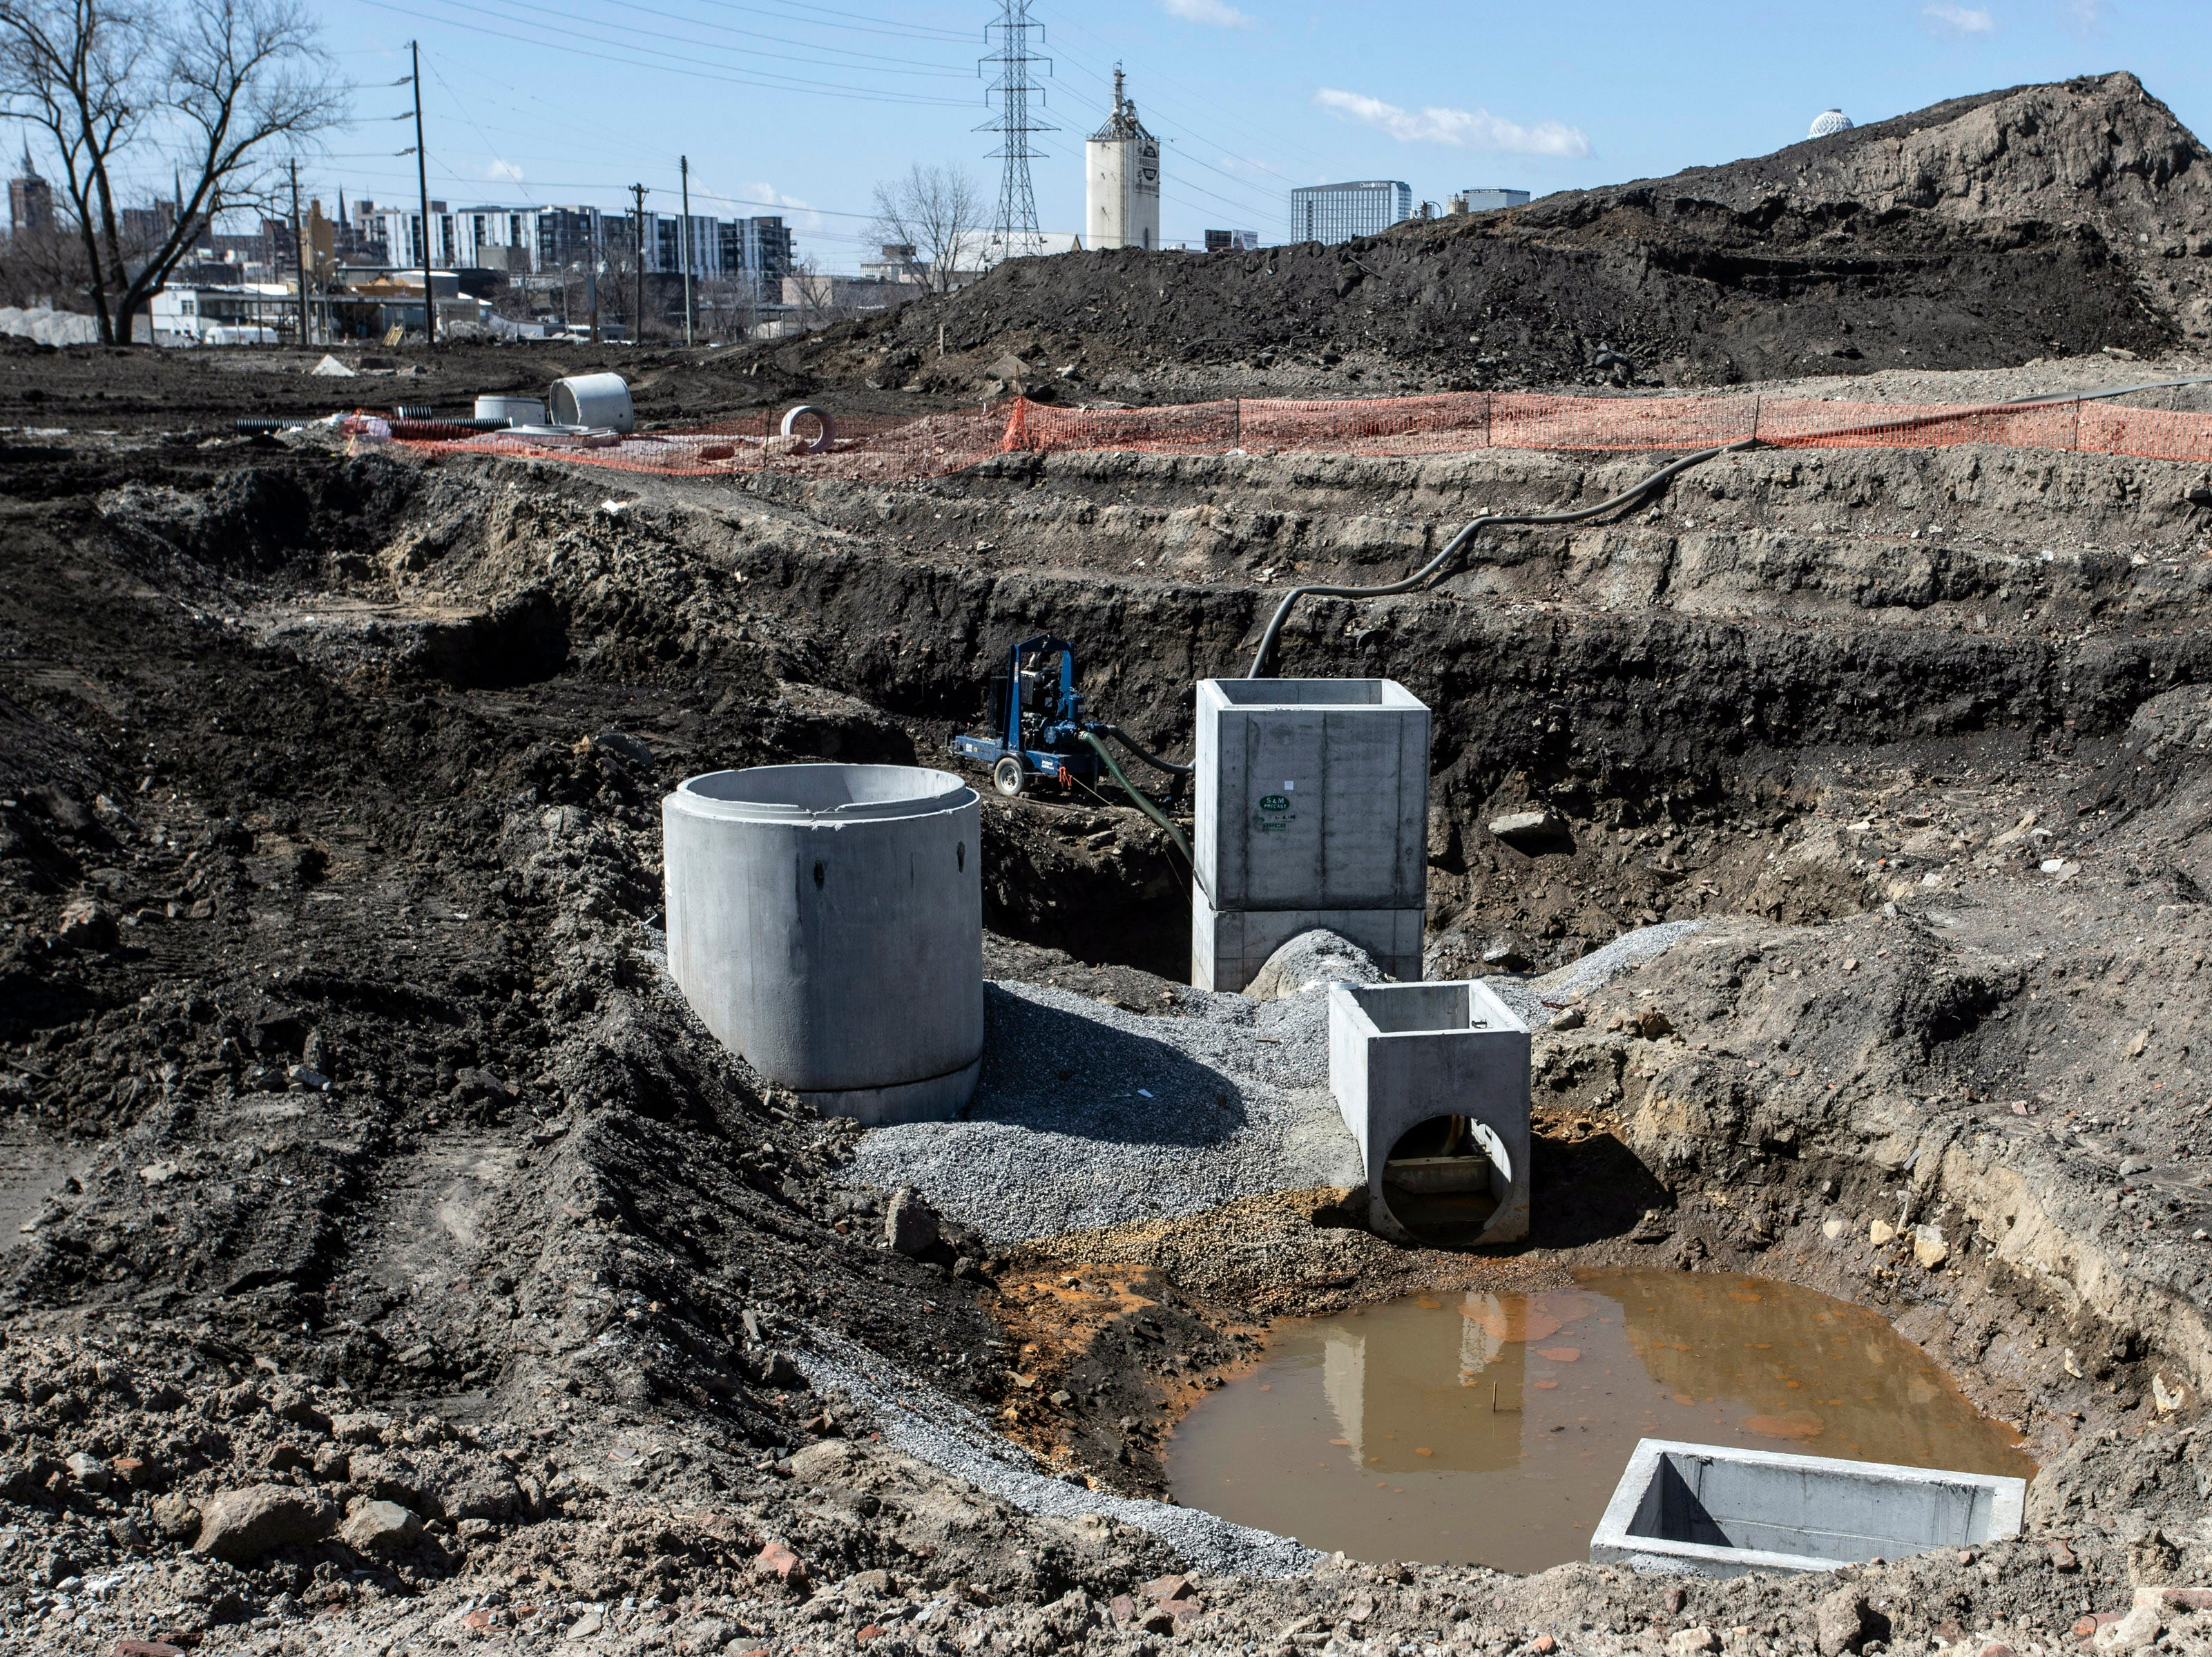 Sewage connectors are prepped at the construction site of the new Louisville City FC stadium in Butchertown. 3/22/19